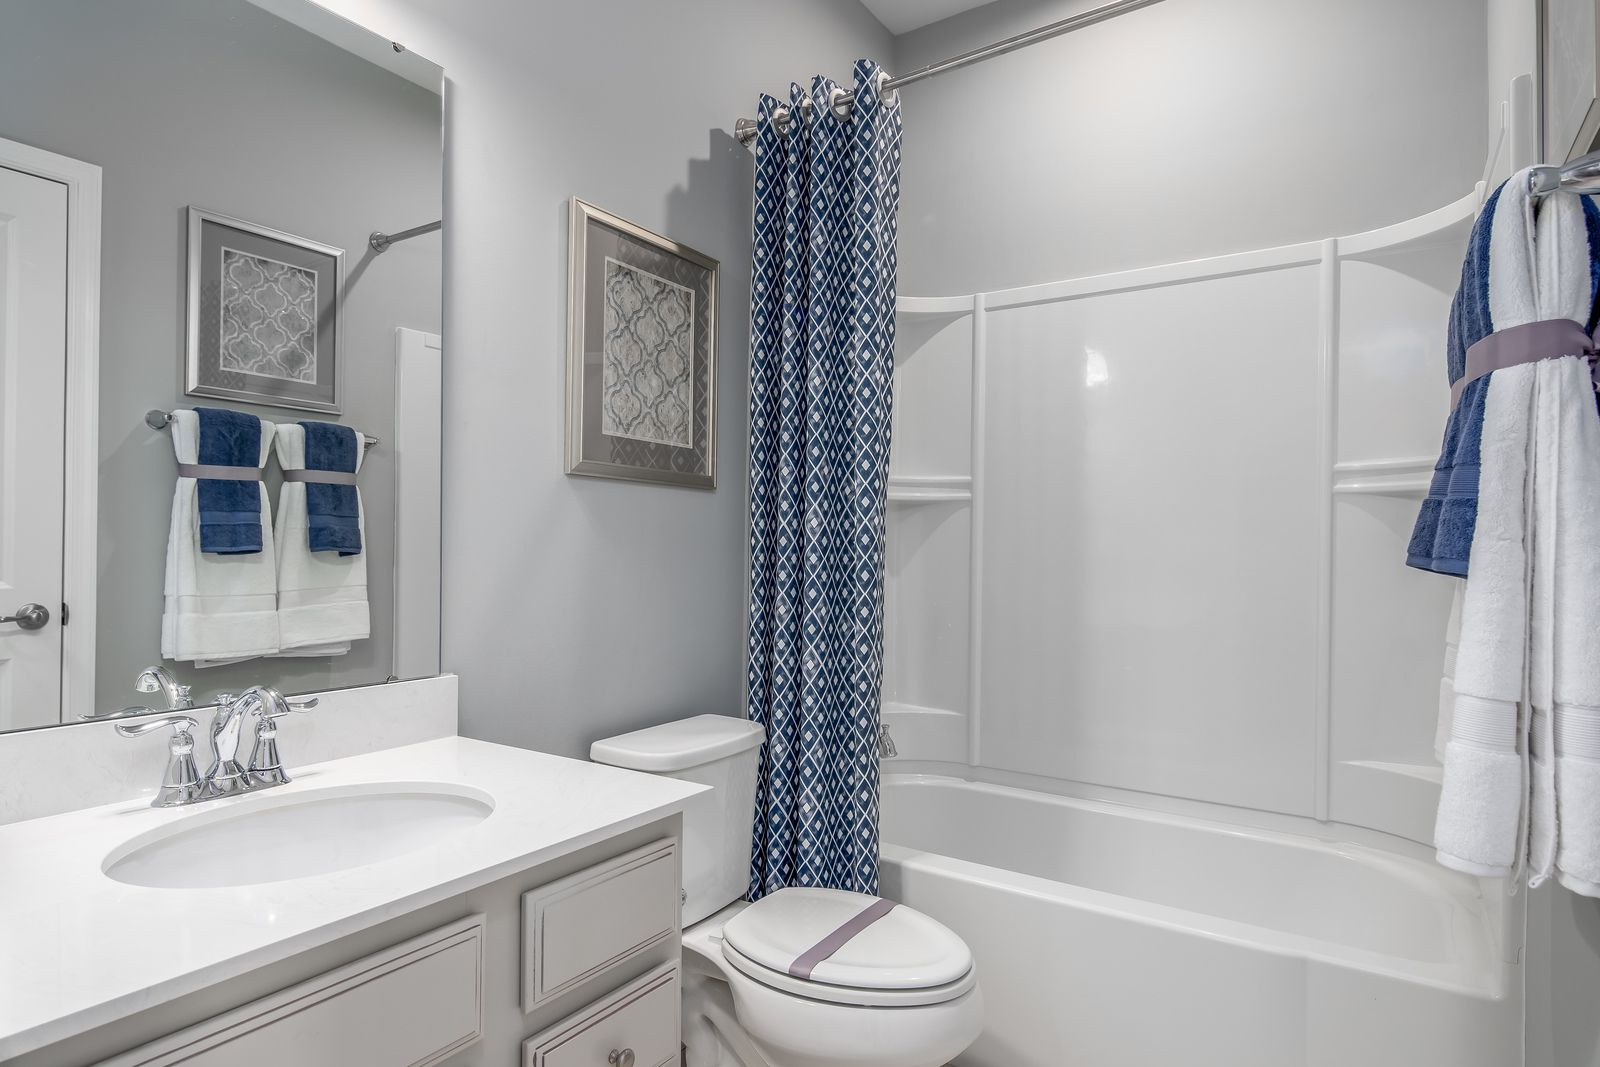 Bathroom featured in the Mozart 2-Car Garage By Ryan Homes in Baltimore, MD